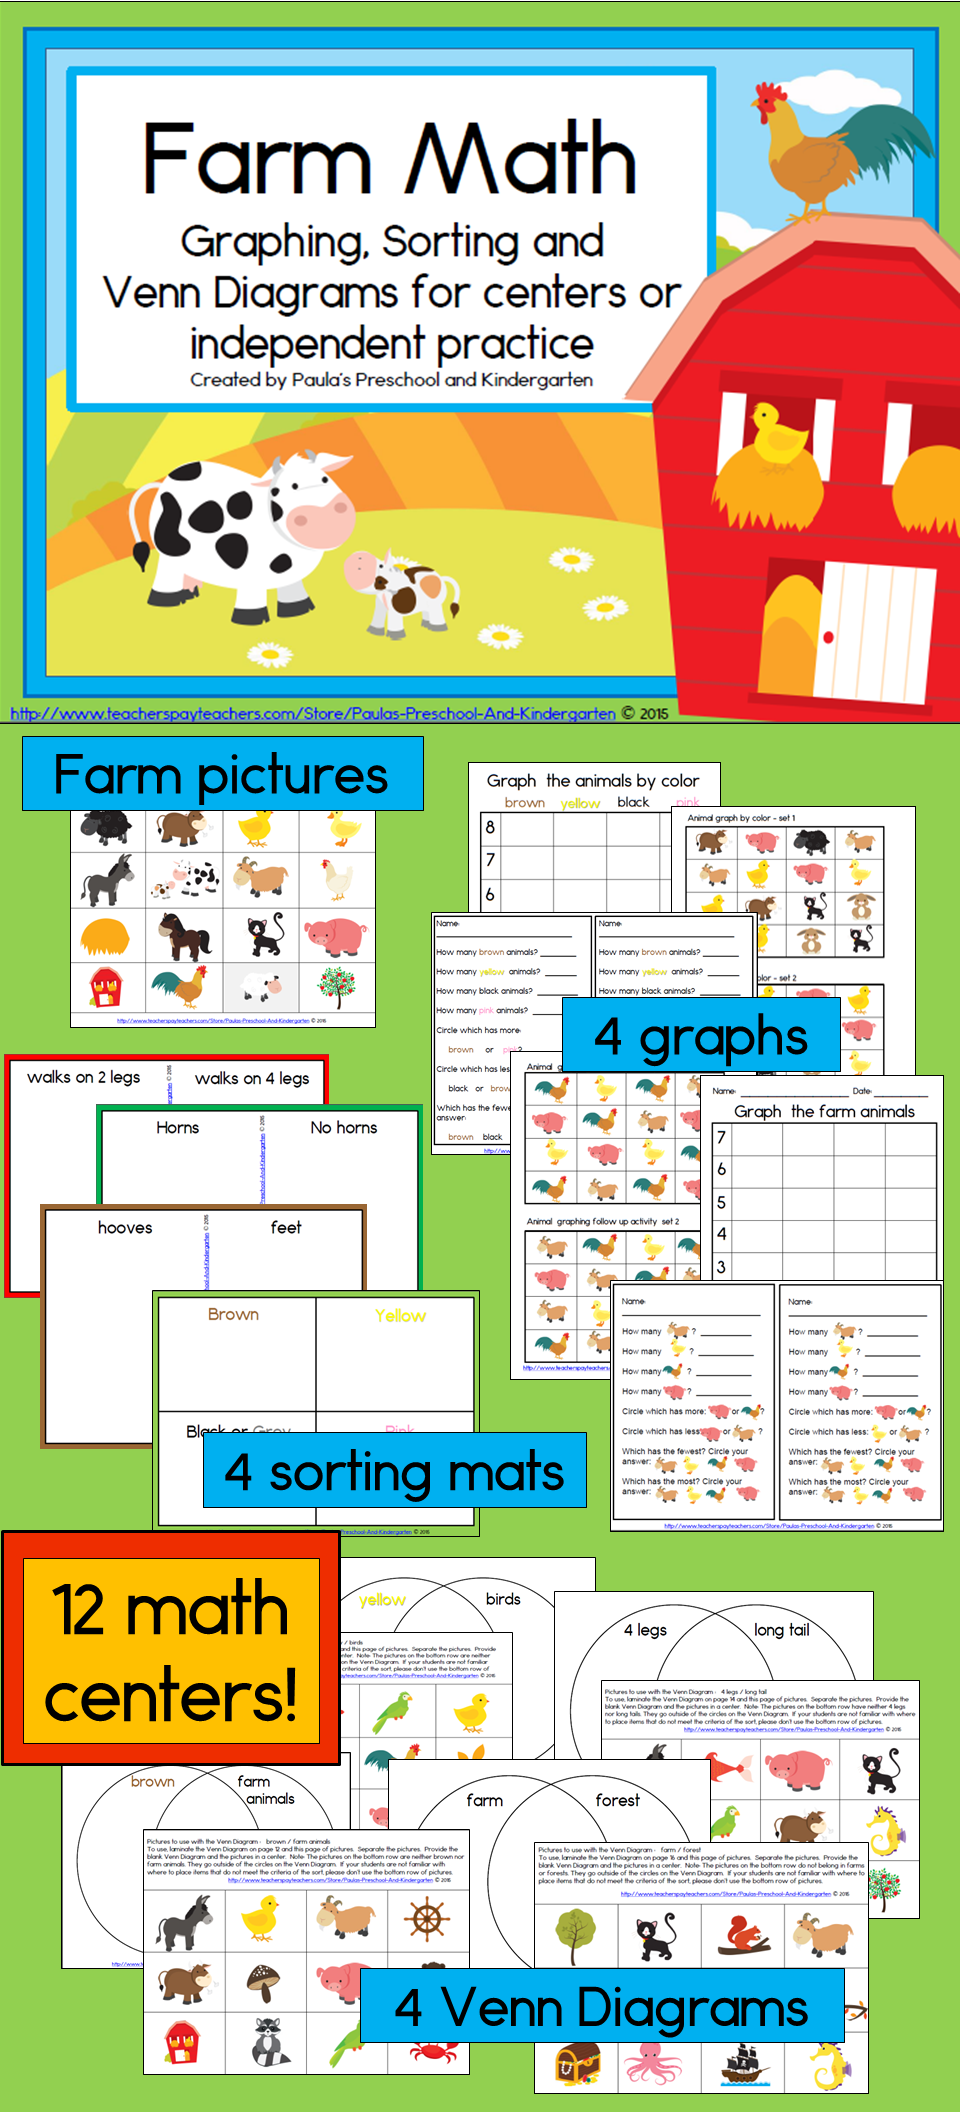 medium resolution of sorting graphing and venn diagrams with a farm theme will engage your preschool and